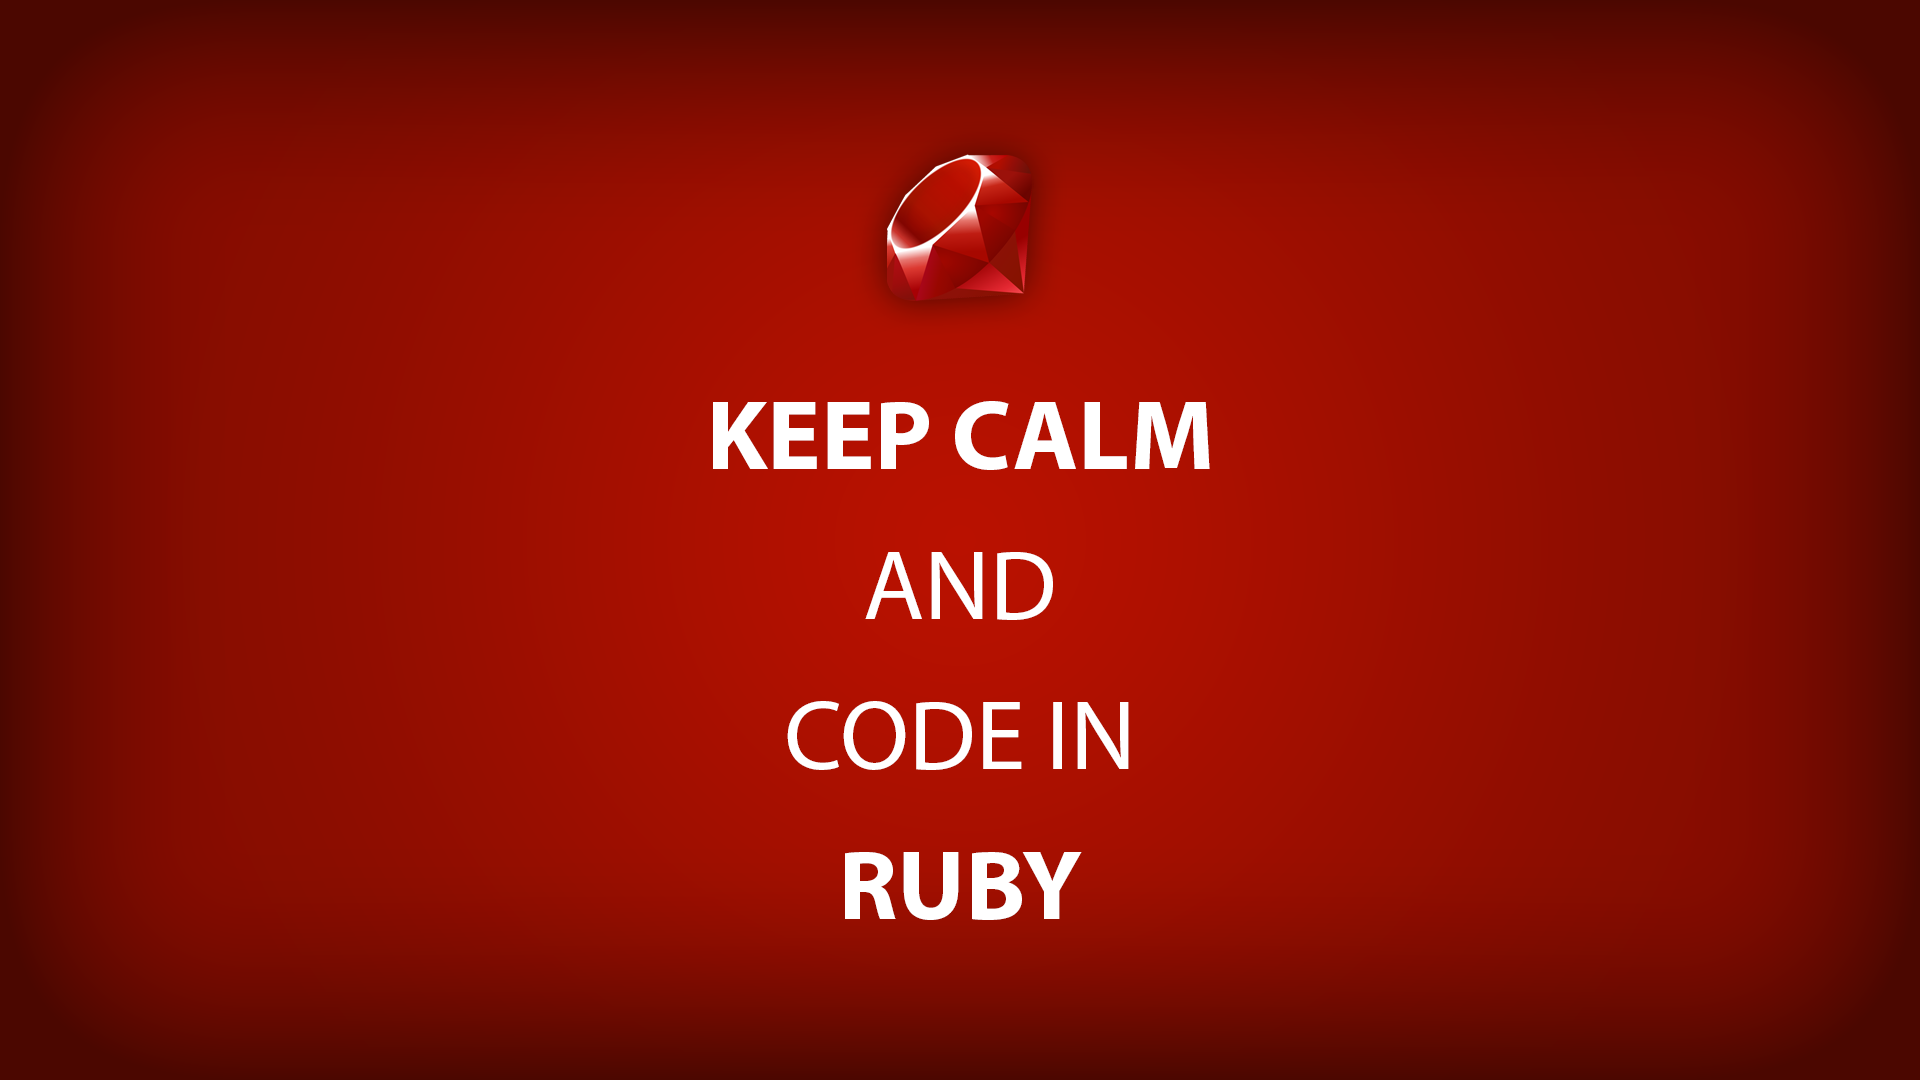 Ruby Whose Code Cuisine Reigns Supreme